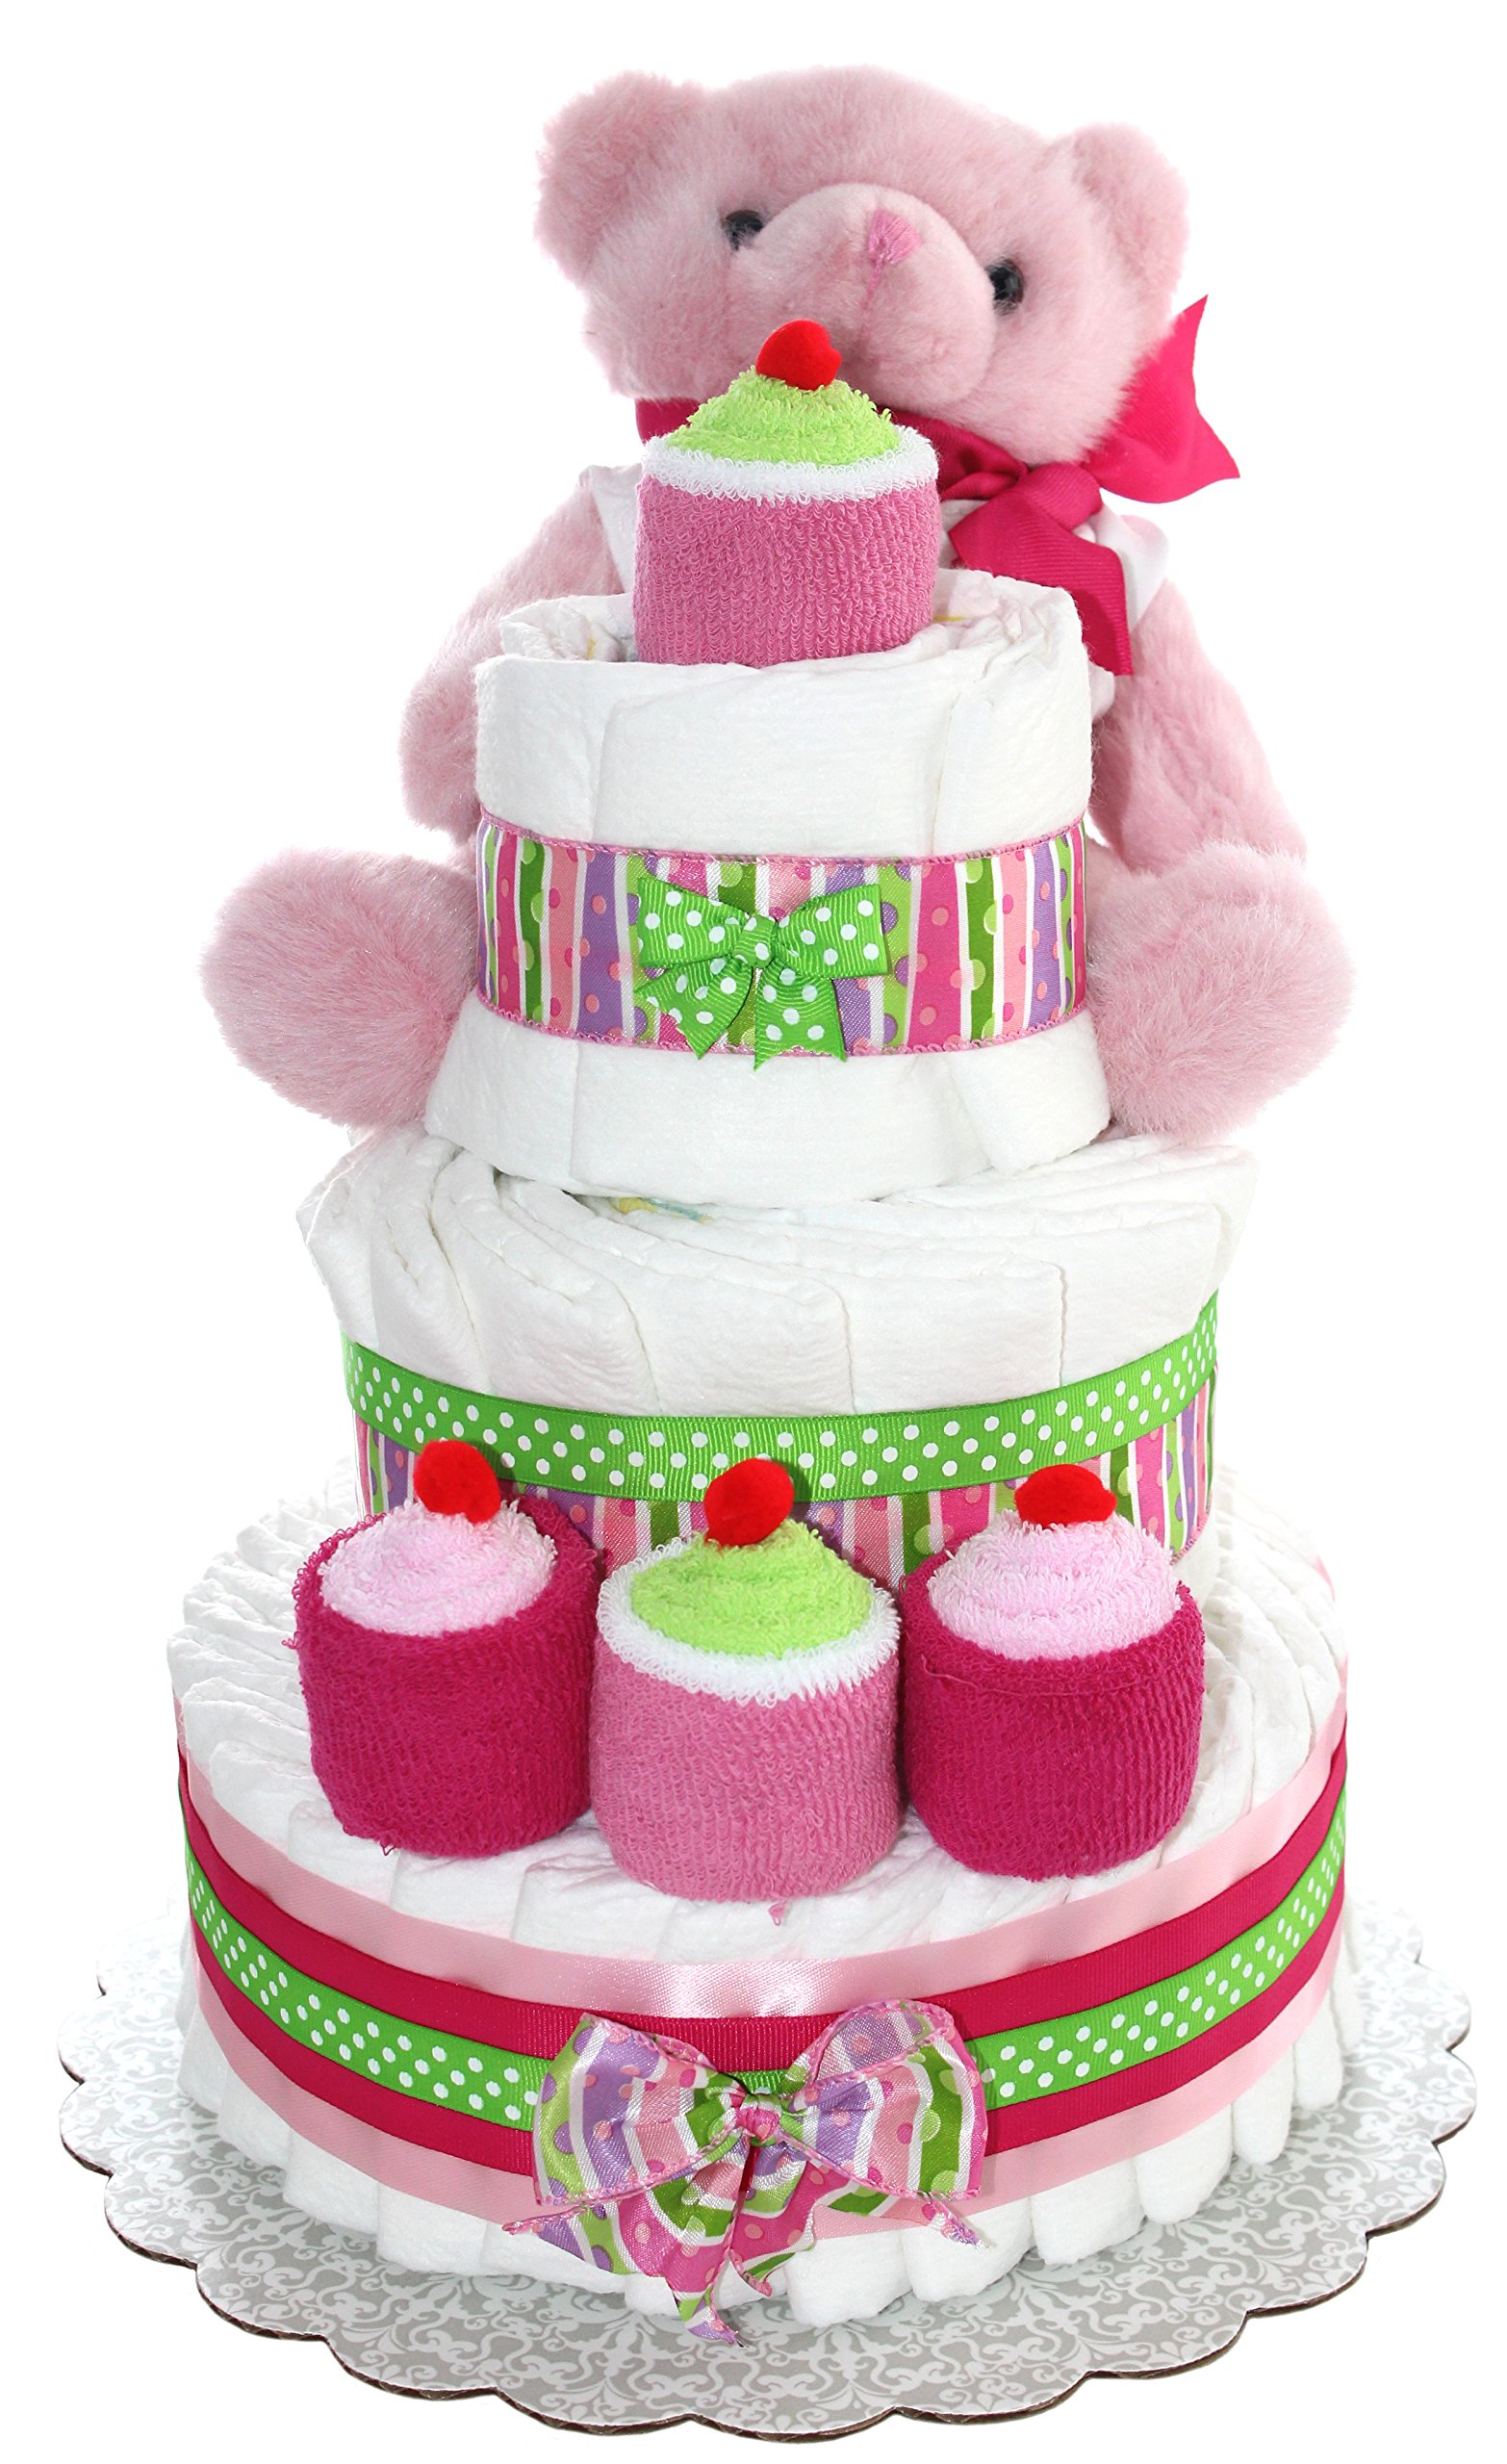 3 Tier Diaper Cake - Pink Teddy Bear Diaper Cake For Girl - Baby Gift For Baby Shower - Teddy Bear Theme - Diaper Cake Is Decorated With Cupcakes Made Out Of Newborn Socks And Washcloths (Pink)